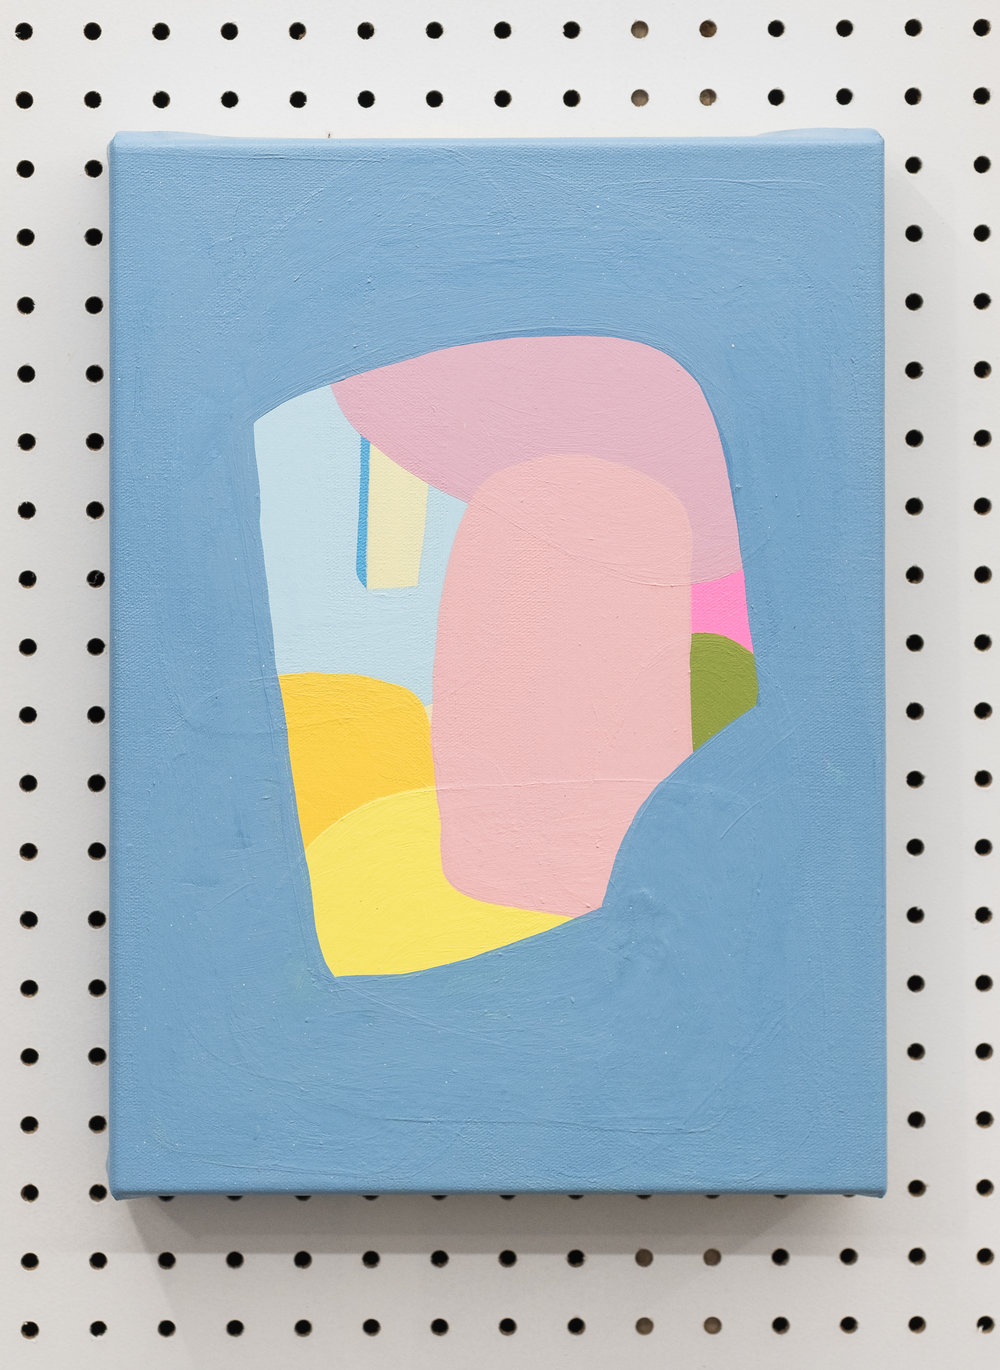 Jeanie Riddle. Small Paint Case, 2018. 15 x 11 in Acrylic on canvas. [Photo by Morgane Clément-Gagnon]